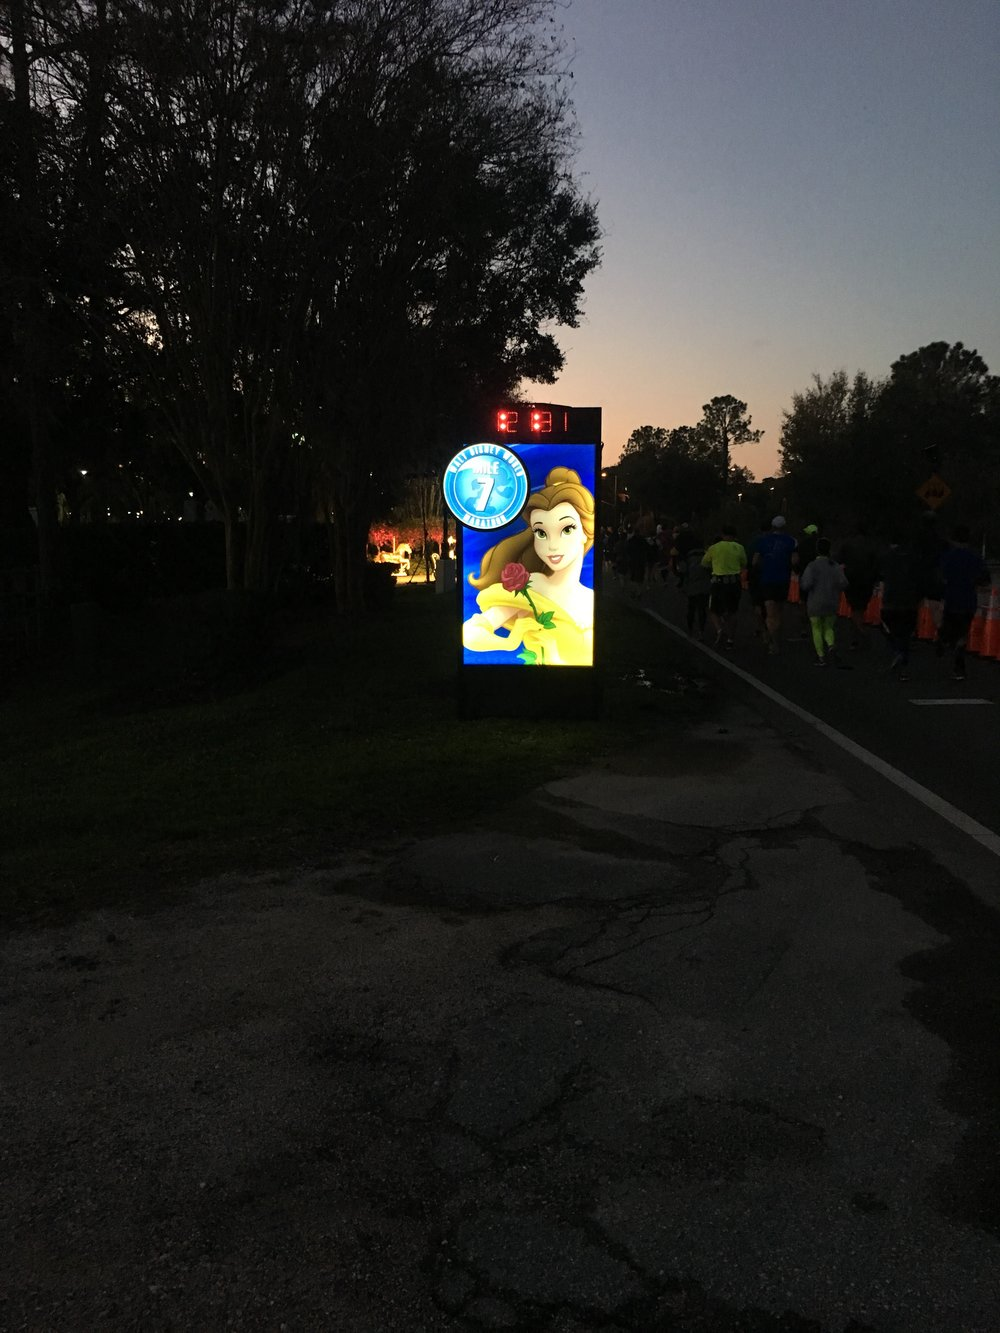 Sunrise at mile 7